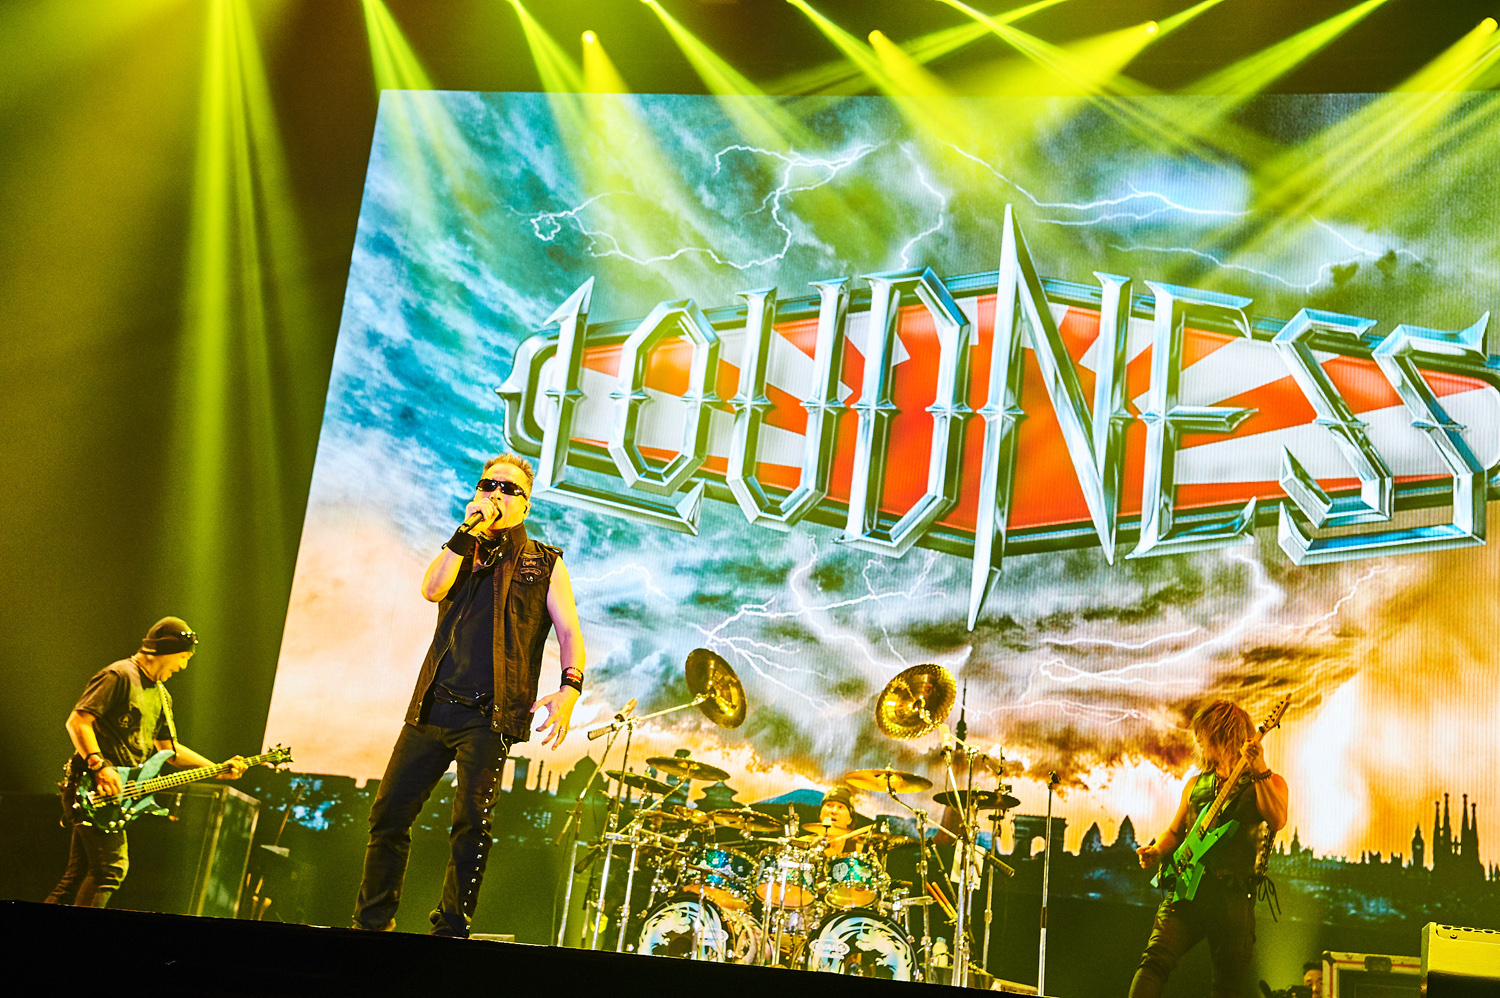 2018年6月24日 at 『LUNATIC FEST. 2018』(LOUDNESS)